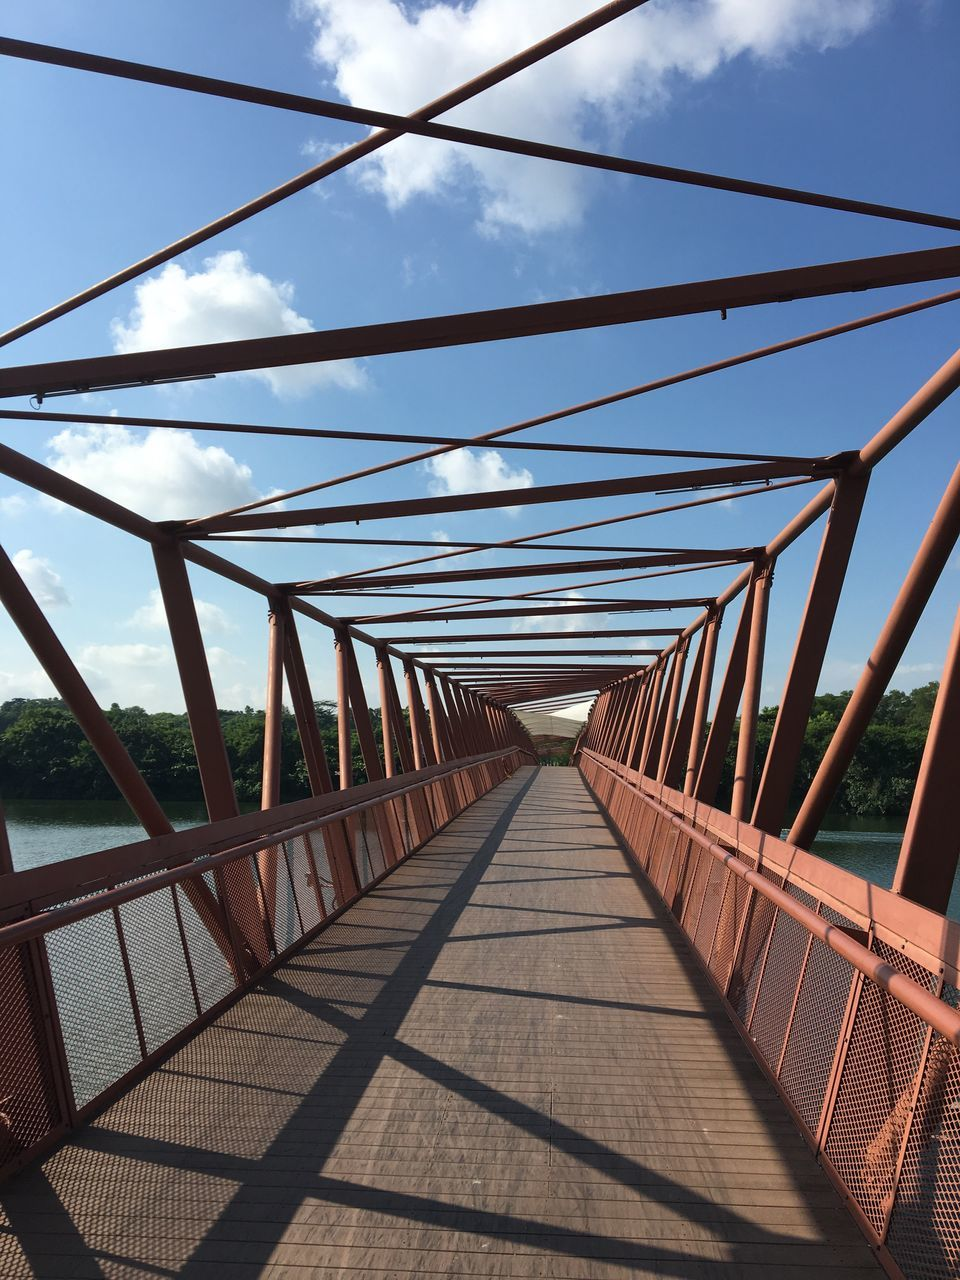 connection, railing, bridge - man made structure, the way forward, day, footbridge, cable, outdoors, sky, no people, nature